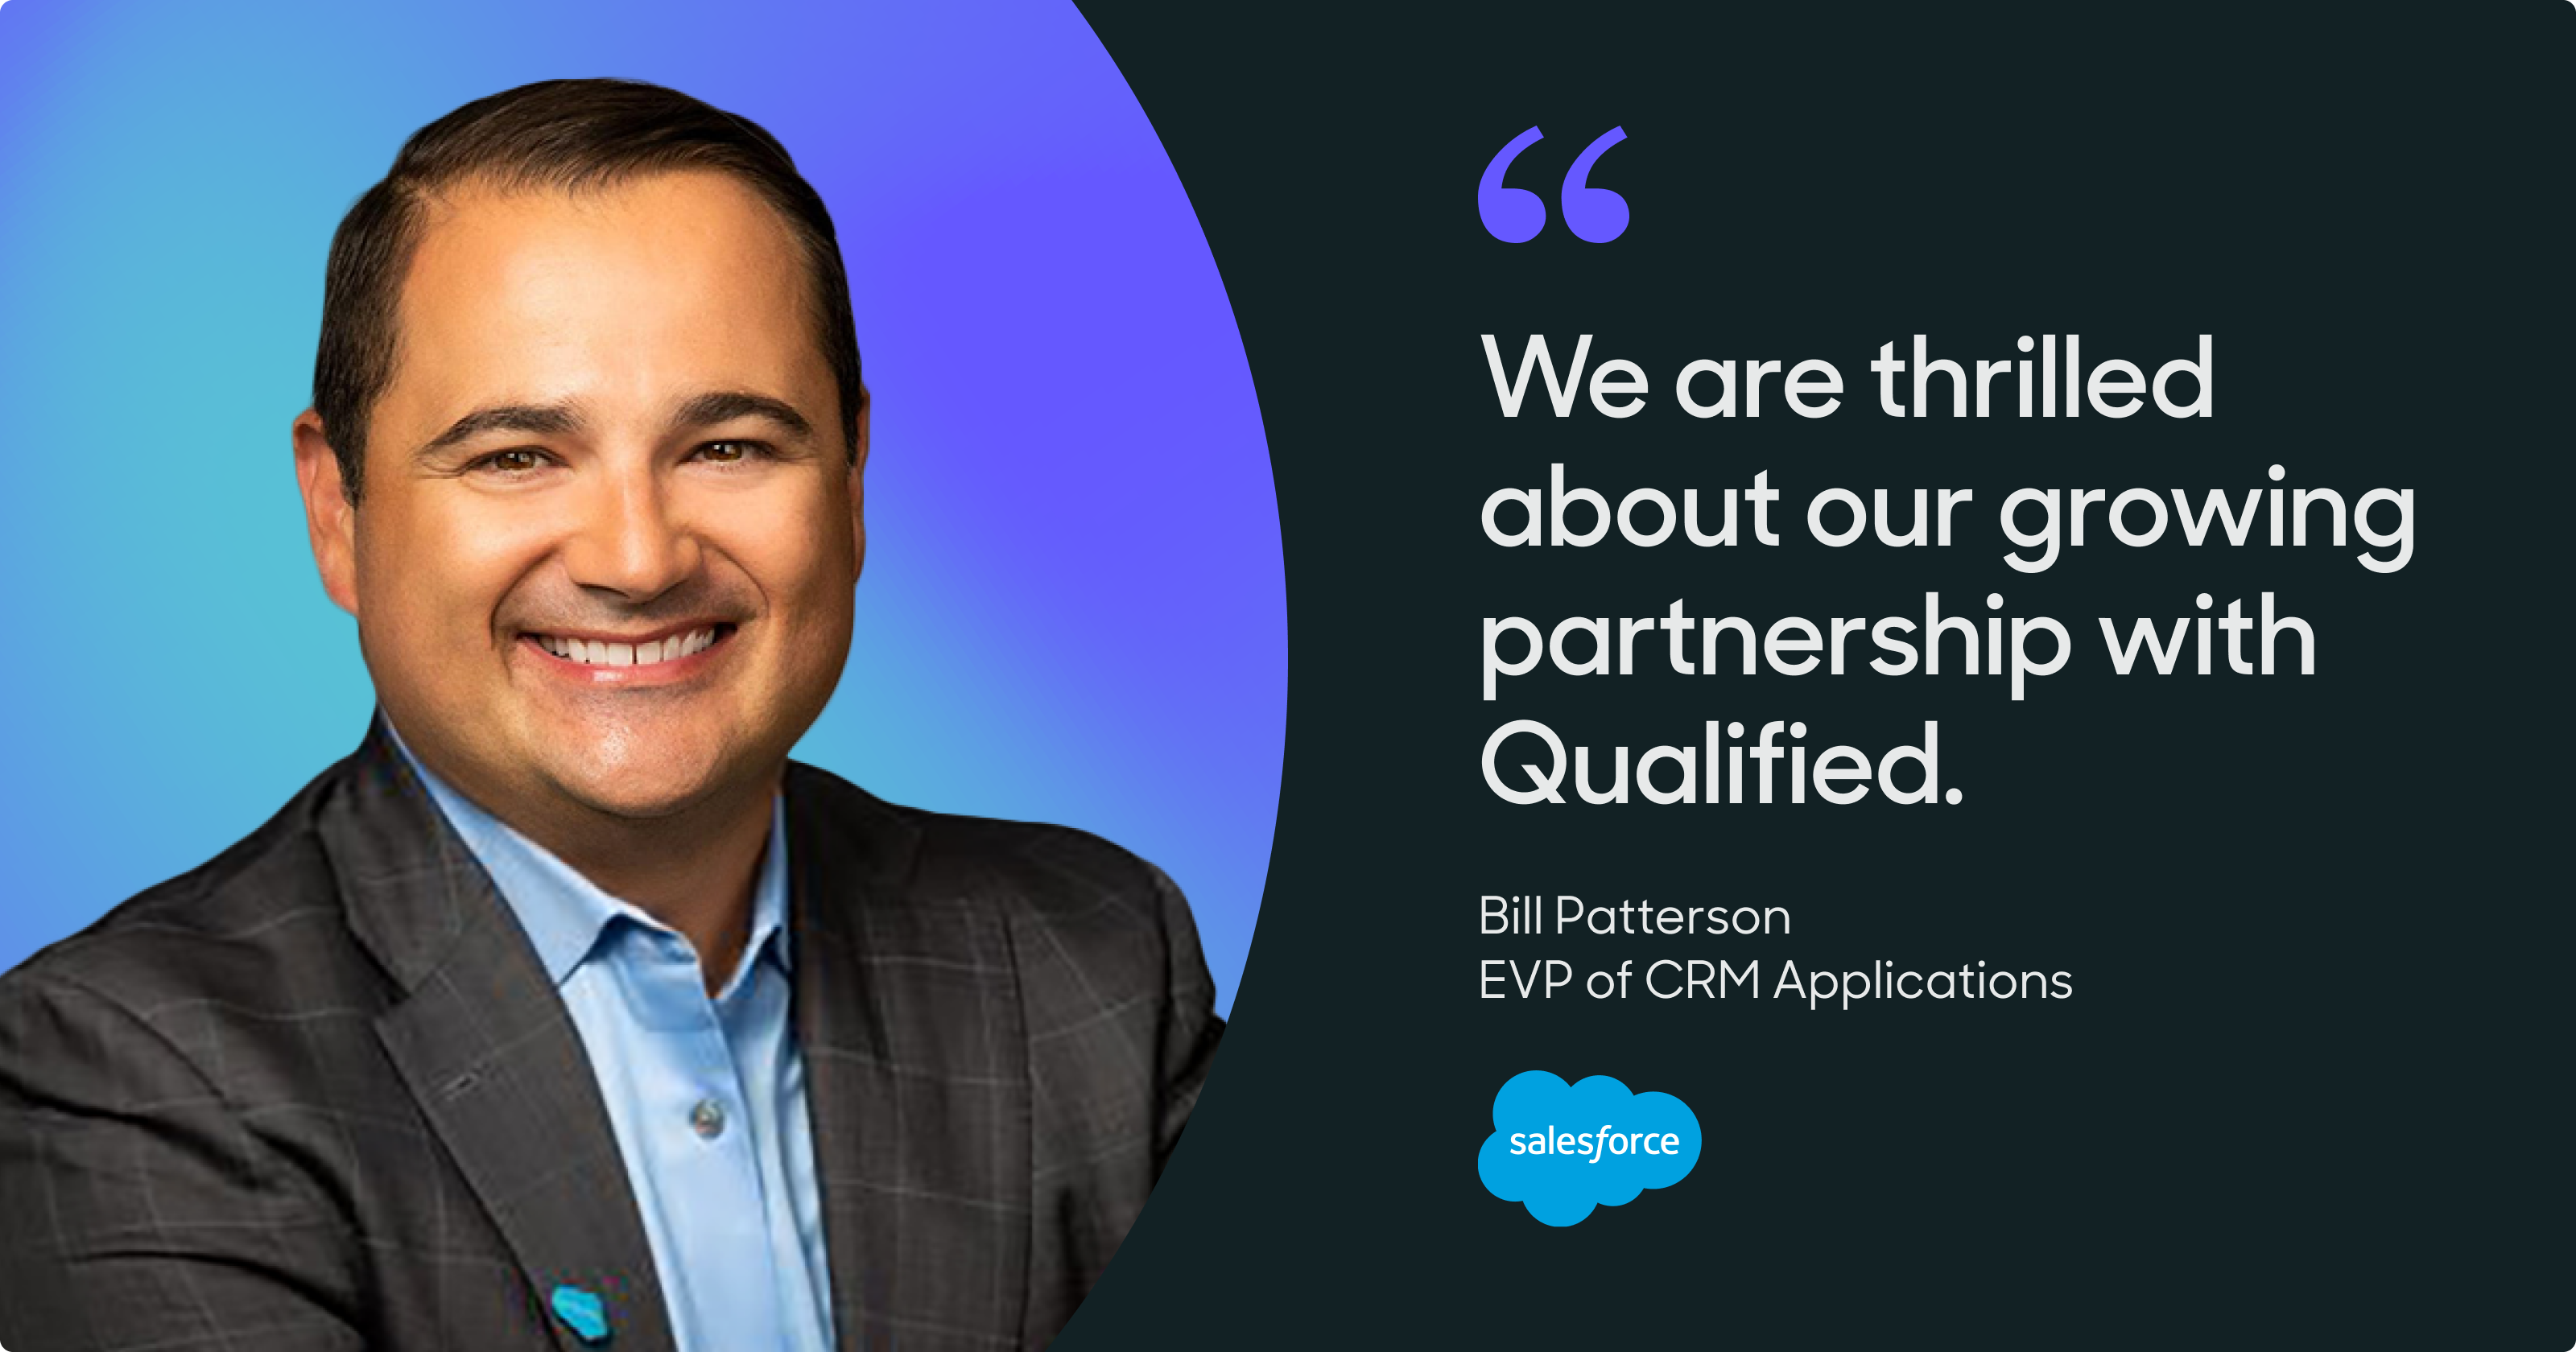 Salesforce EVP of CRM Applications Bill Patterson shares his excitement about Qualified's conversational sales and marketing platform